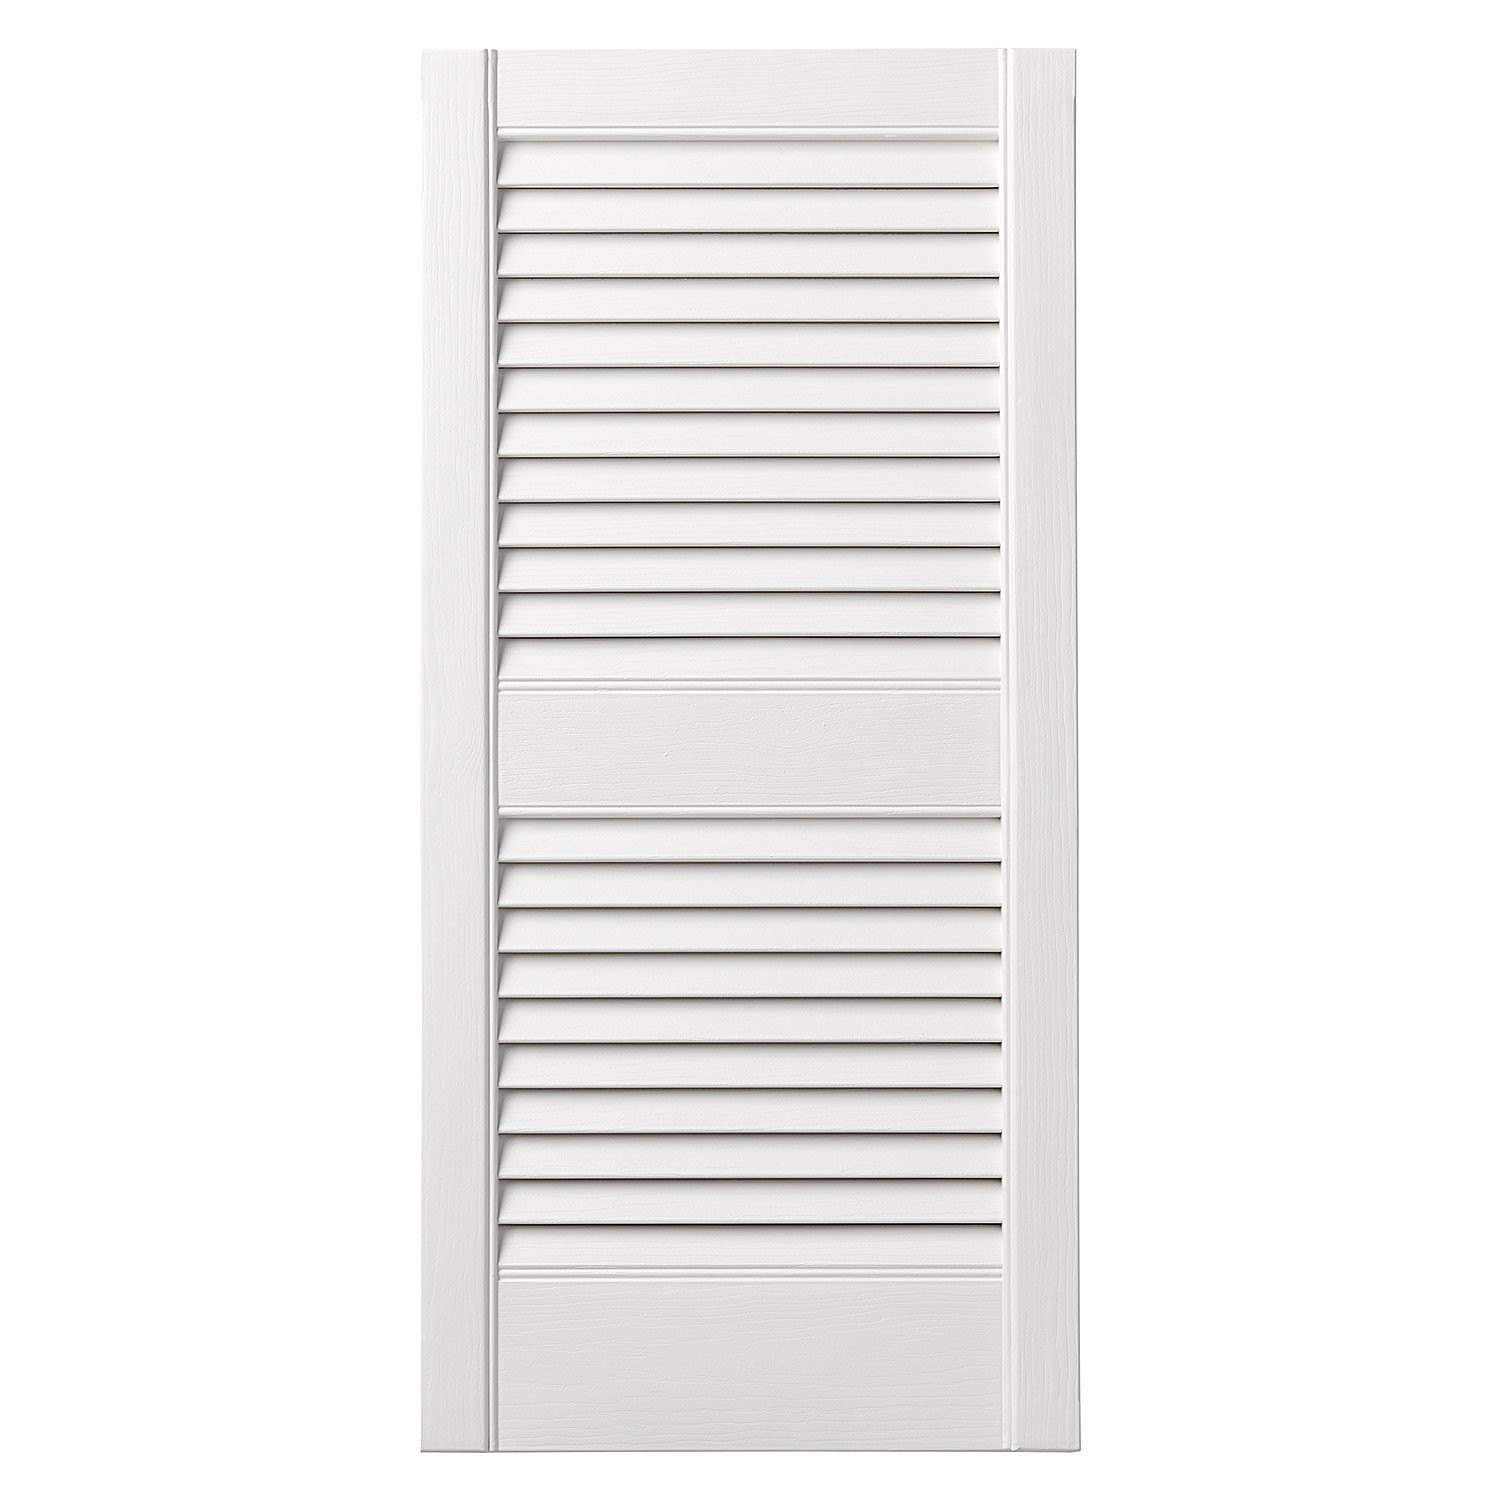 Ply Gem Shutters and Accents VINLV1531 11 Louvered Shutter, 15'', White